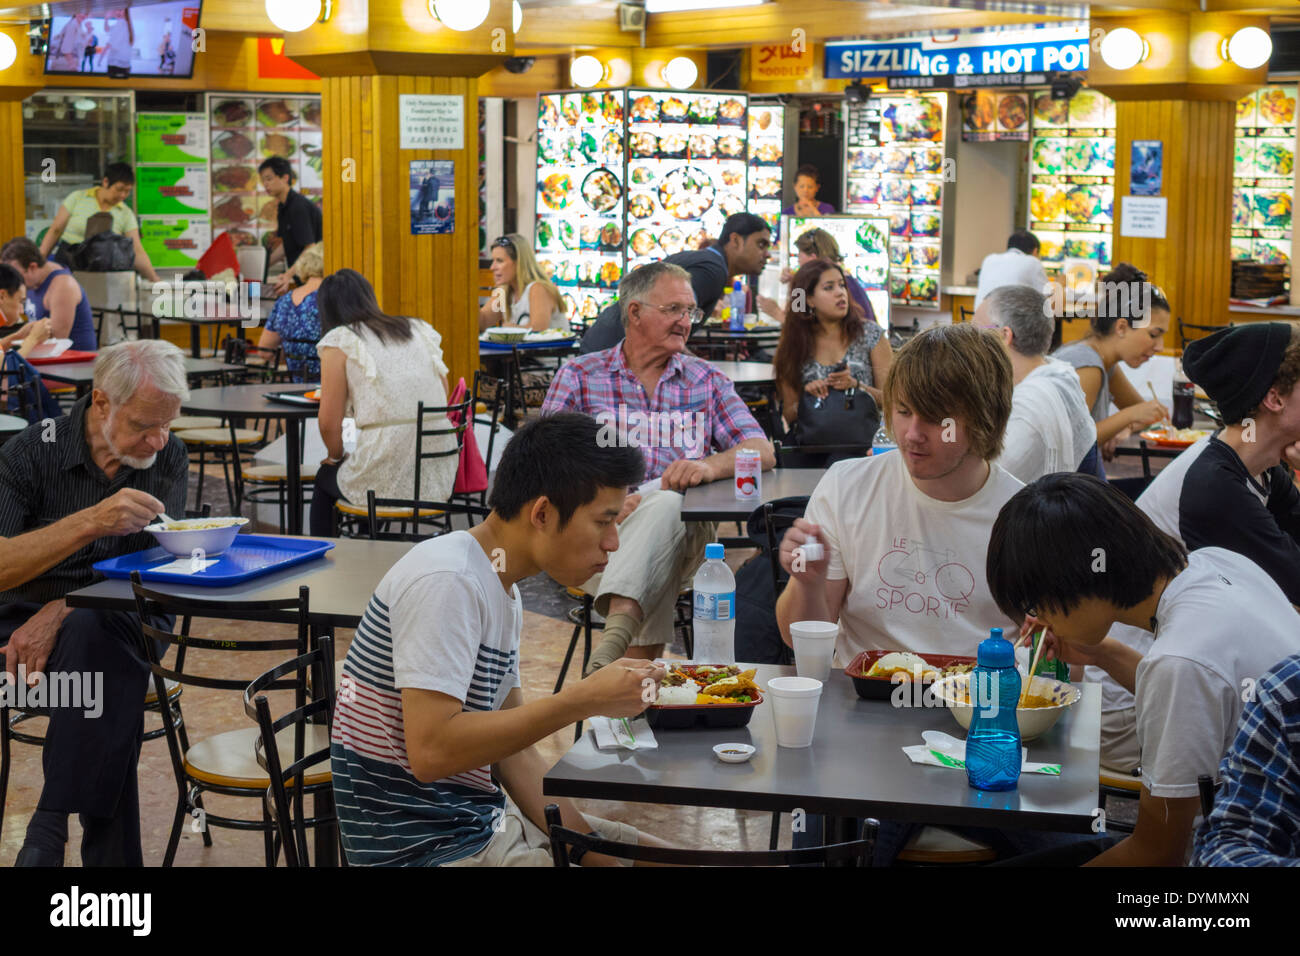 Sydney NSW Australie Nouvelle Galles du Sud Dixon Dixon Street Haymarket House Food Court Asian man friends eating restaurant gastronomique Photo Stock